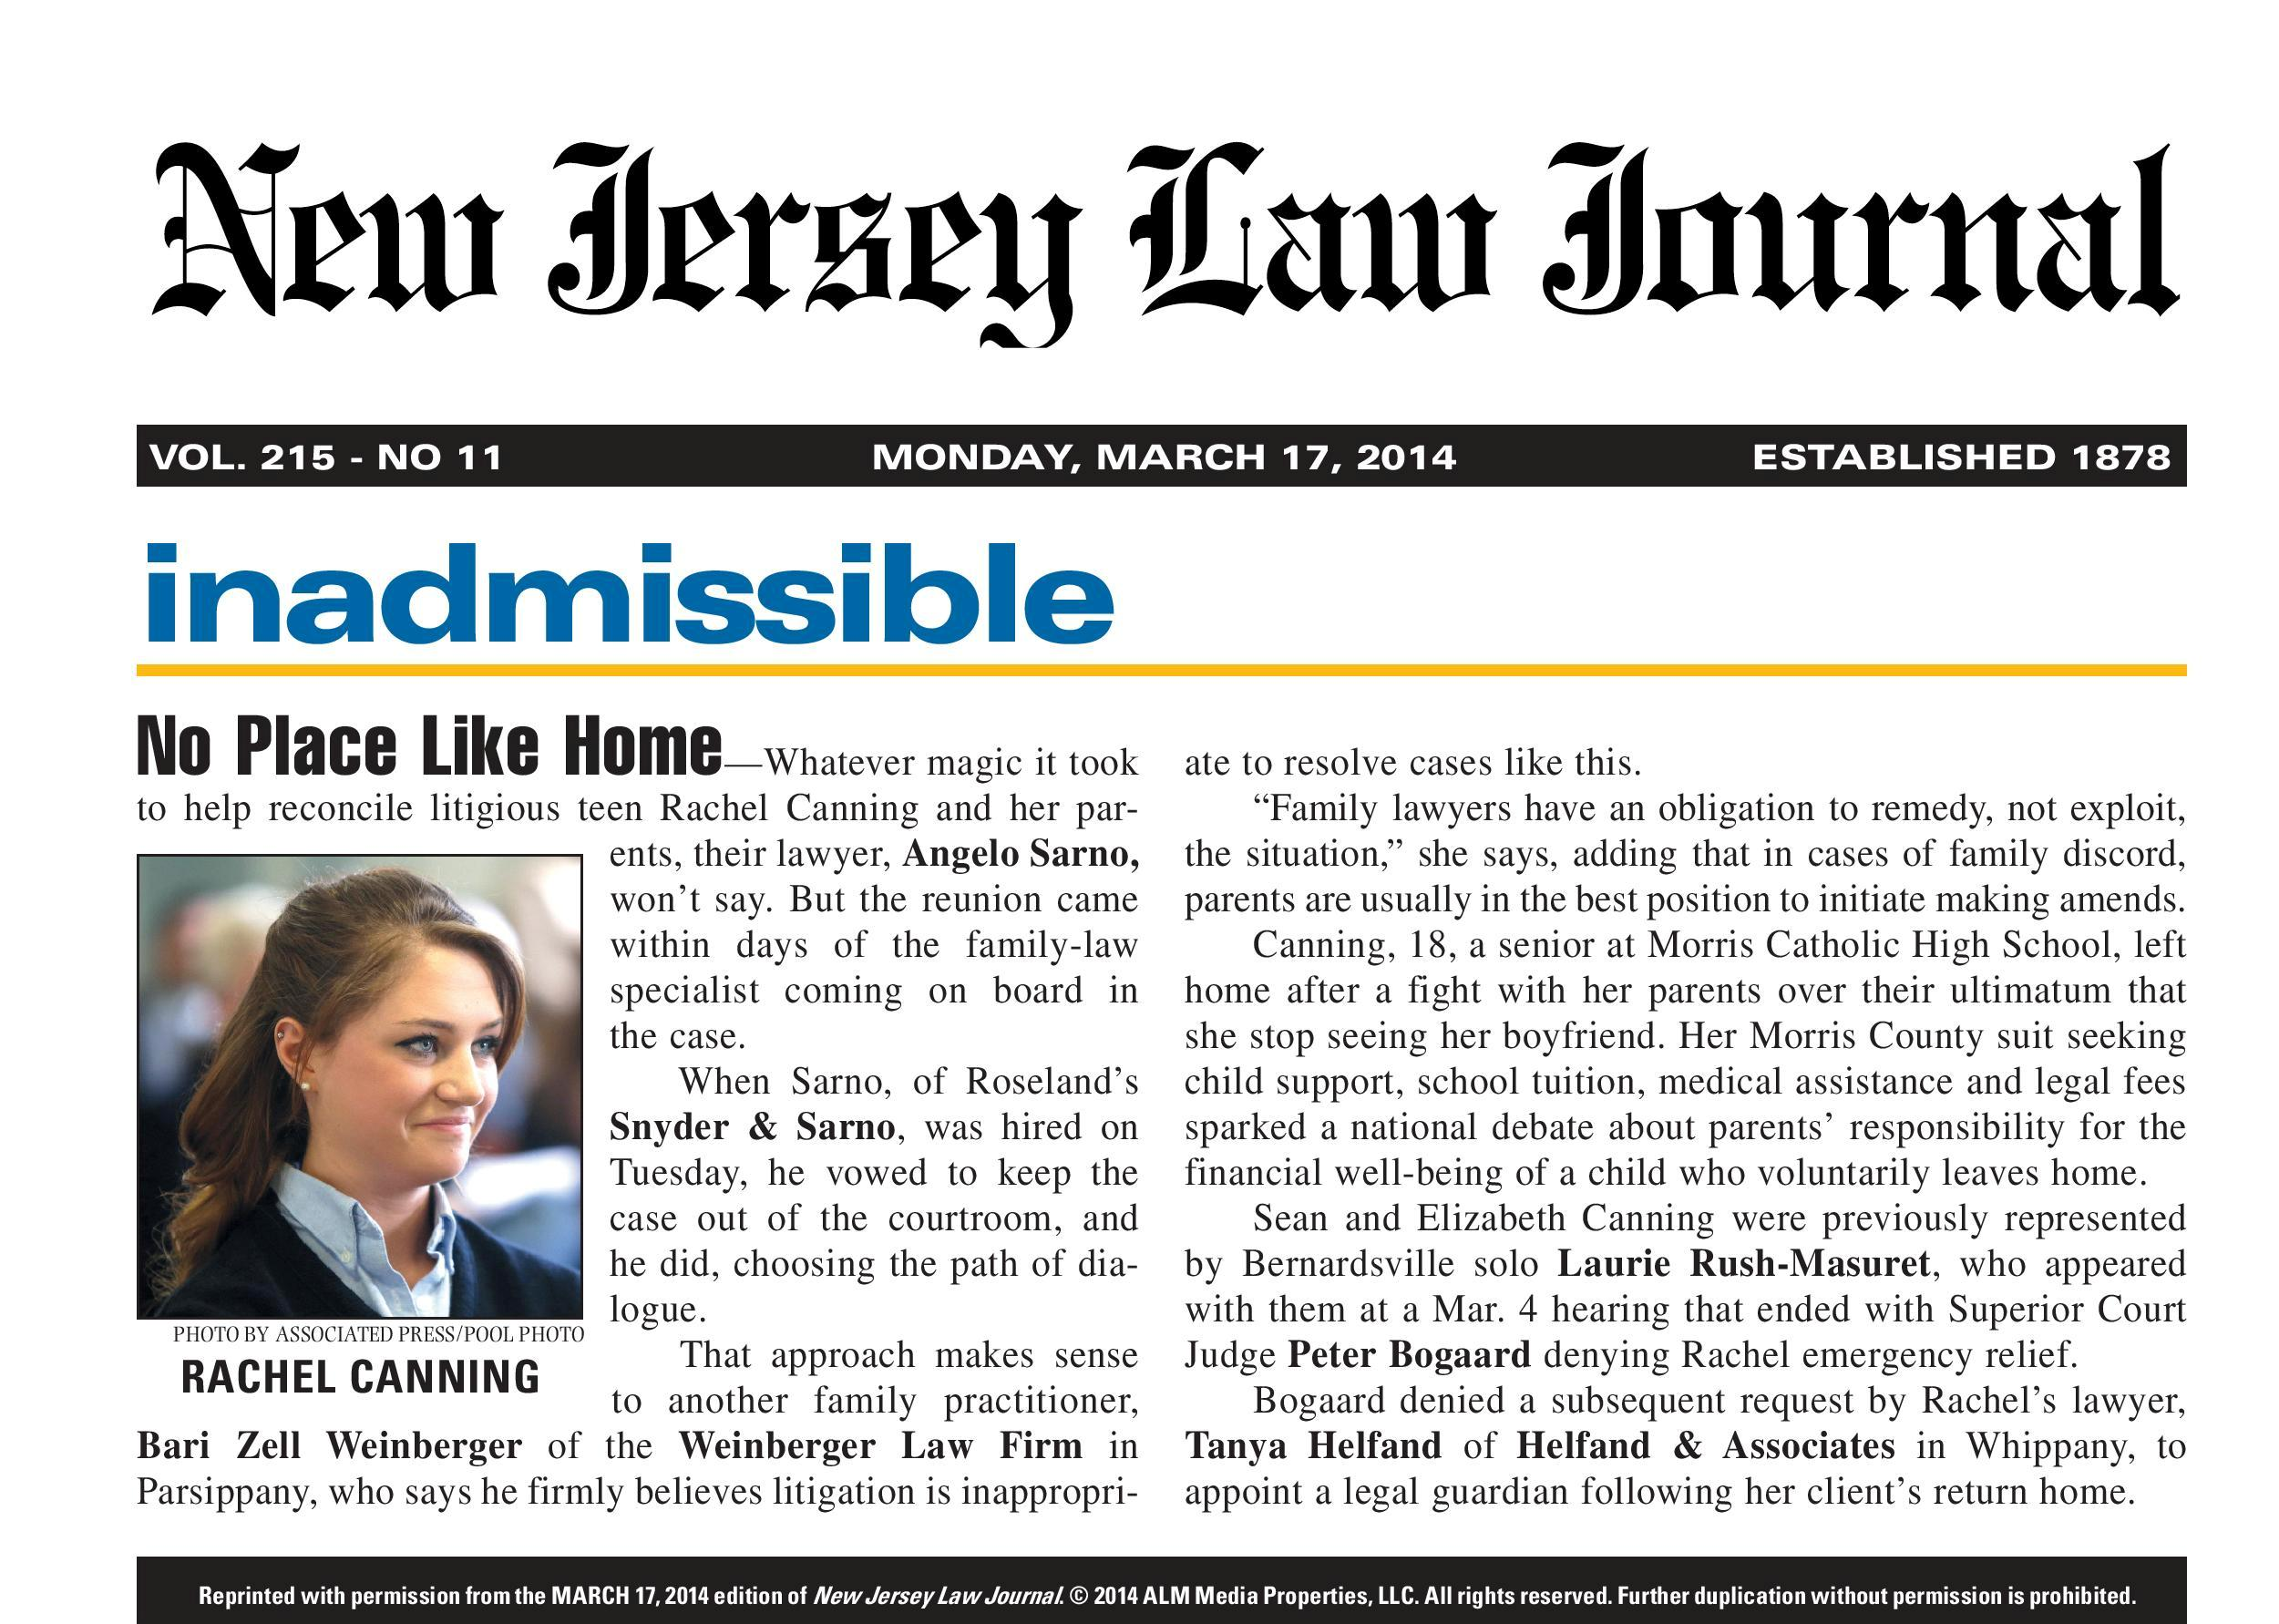 New Jersey Law Journal article